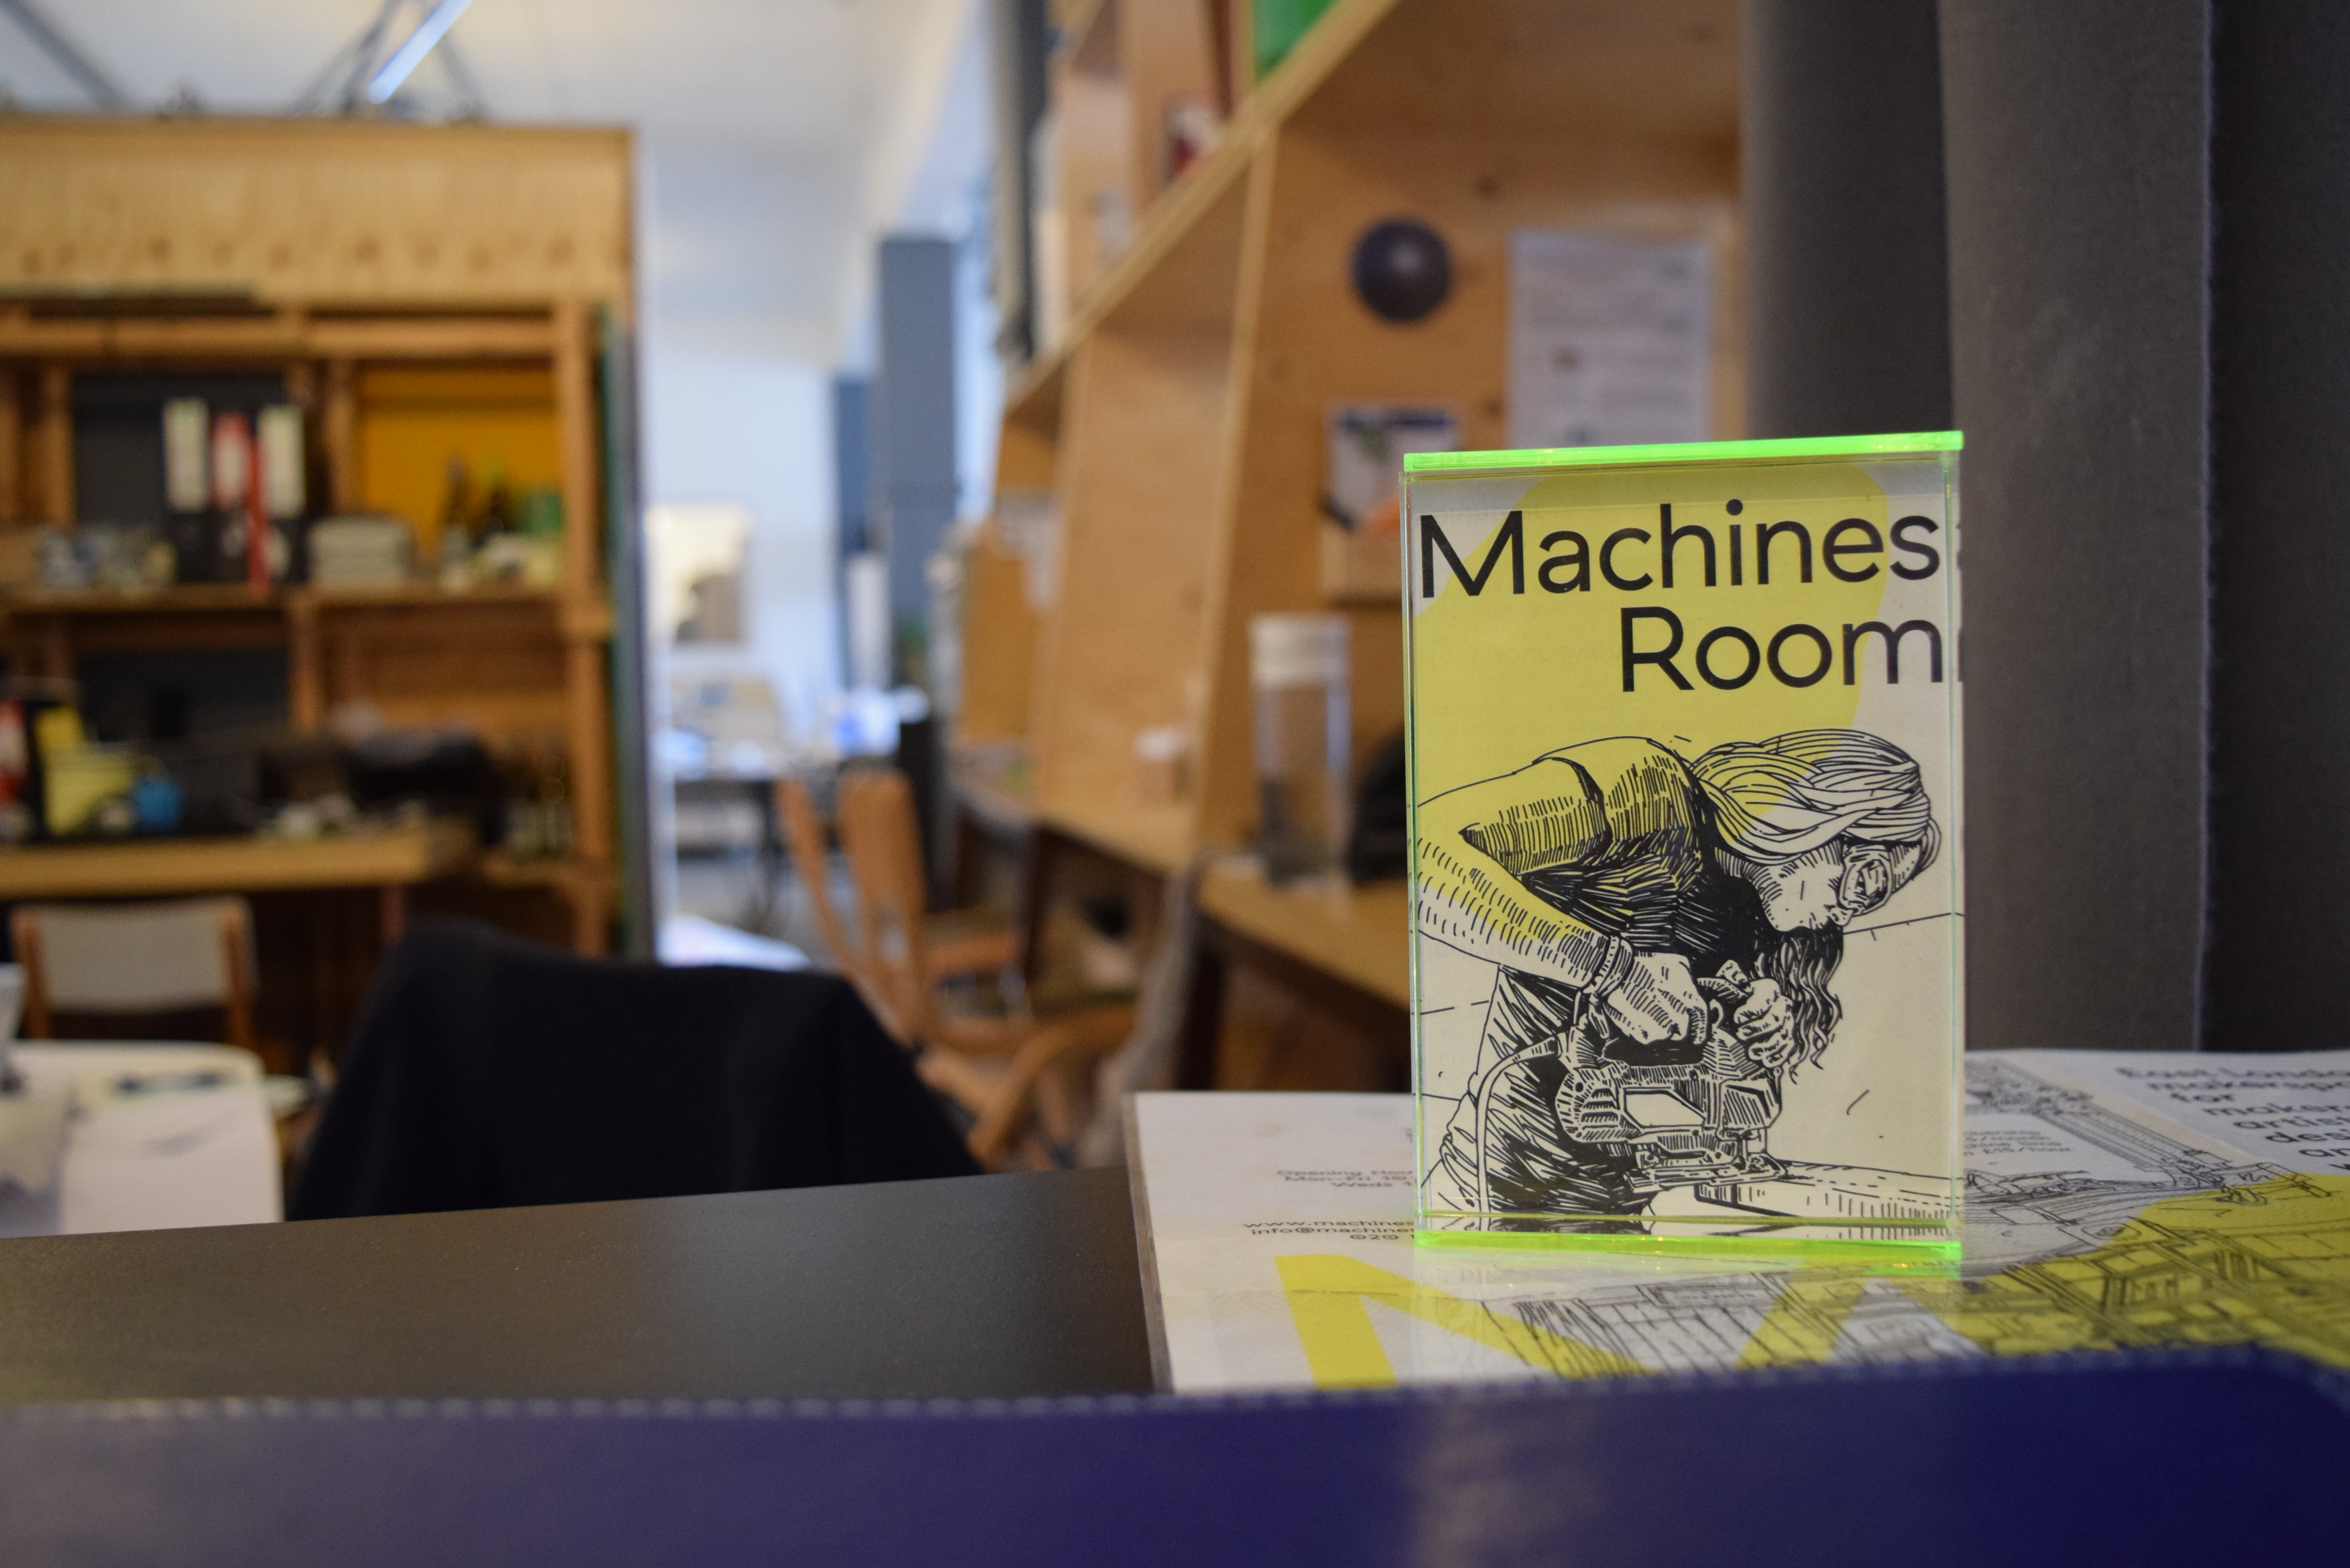 Meet: Machines Room